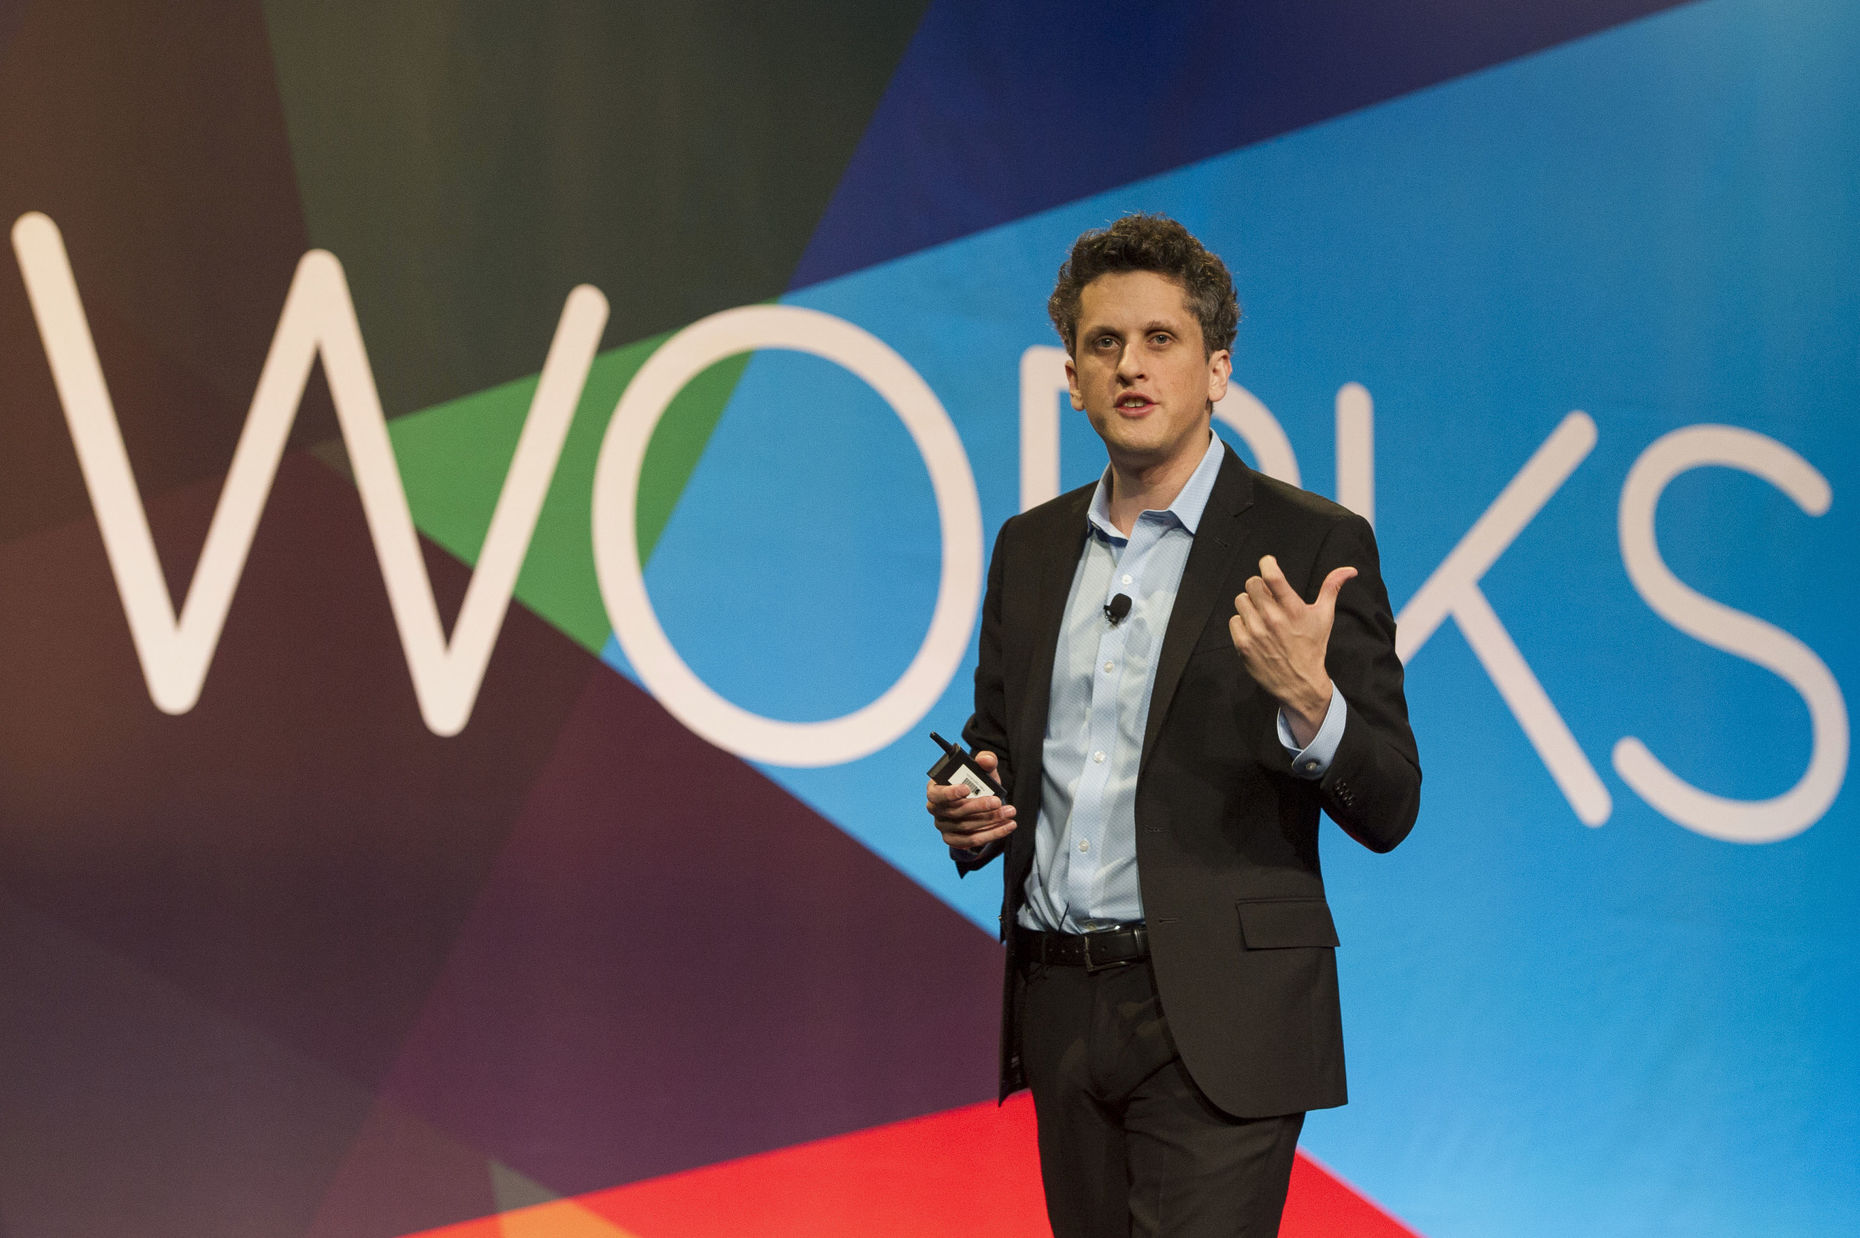 Box CEO Aaron Levie. Photo by Bloomberg.